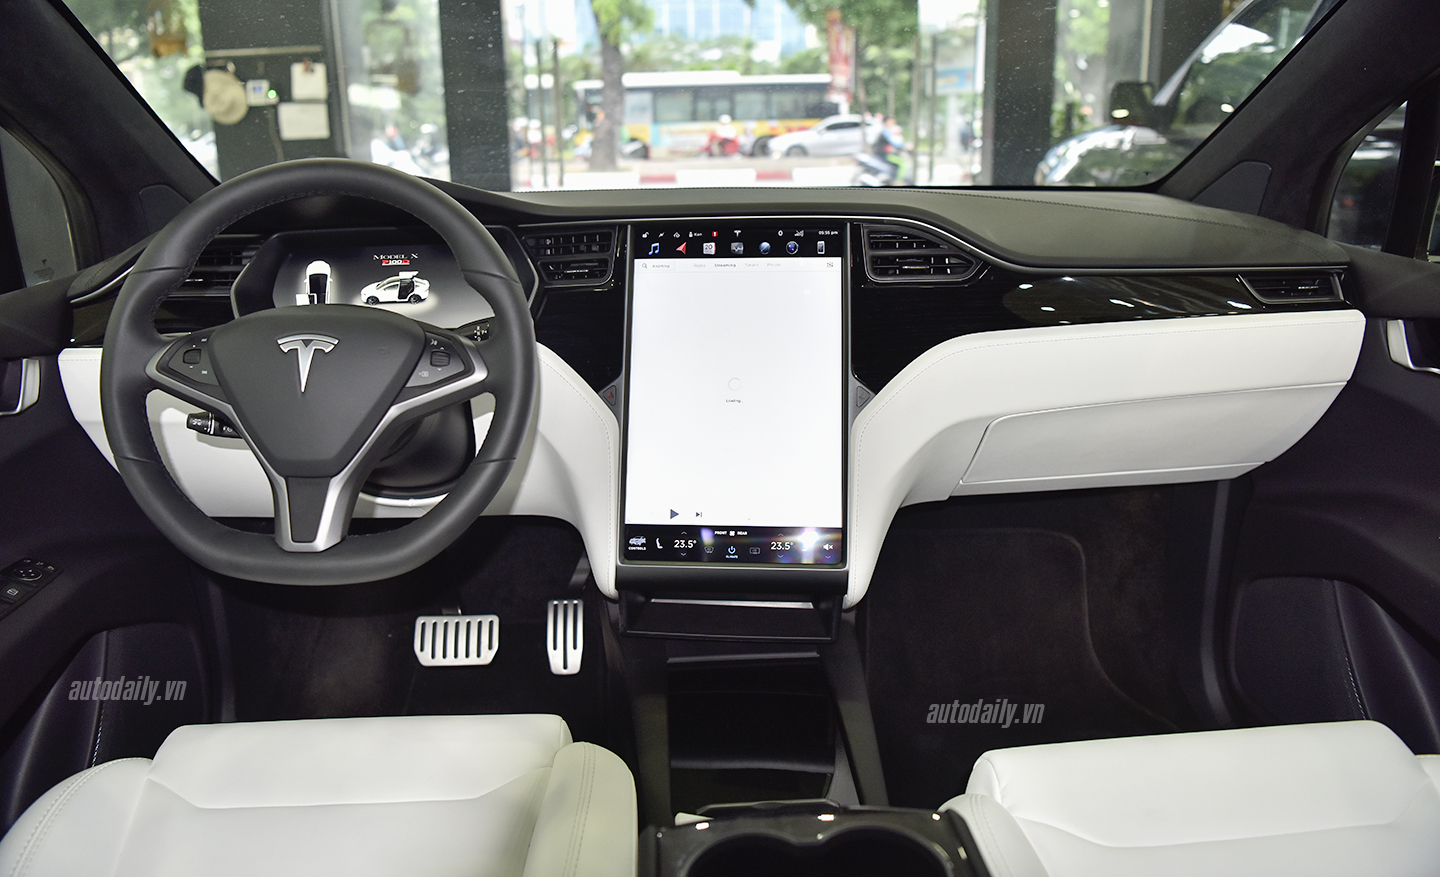 tesla-model-x-autodaily-dsc1366-copy.jpg